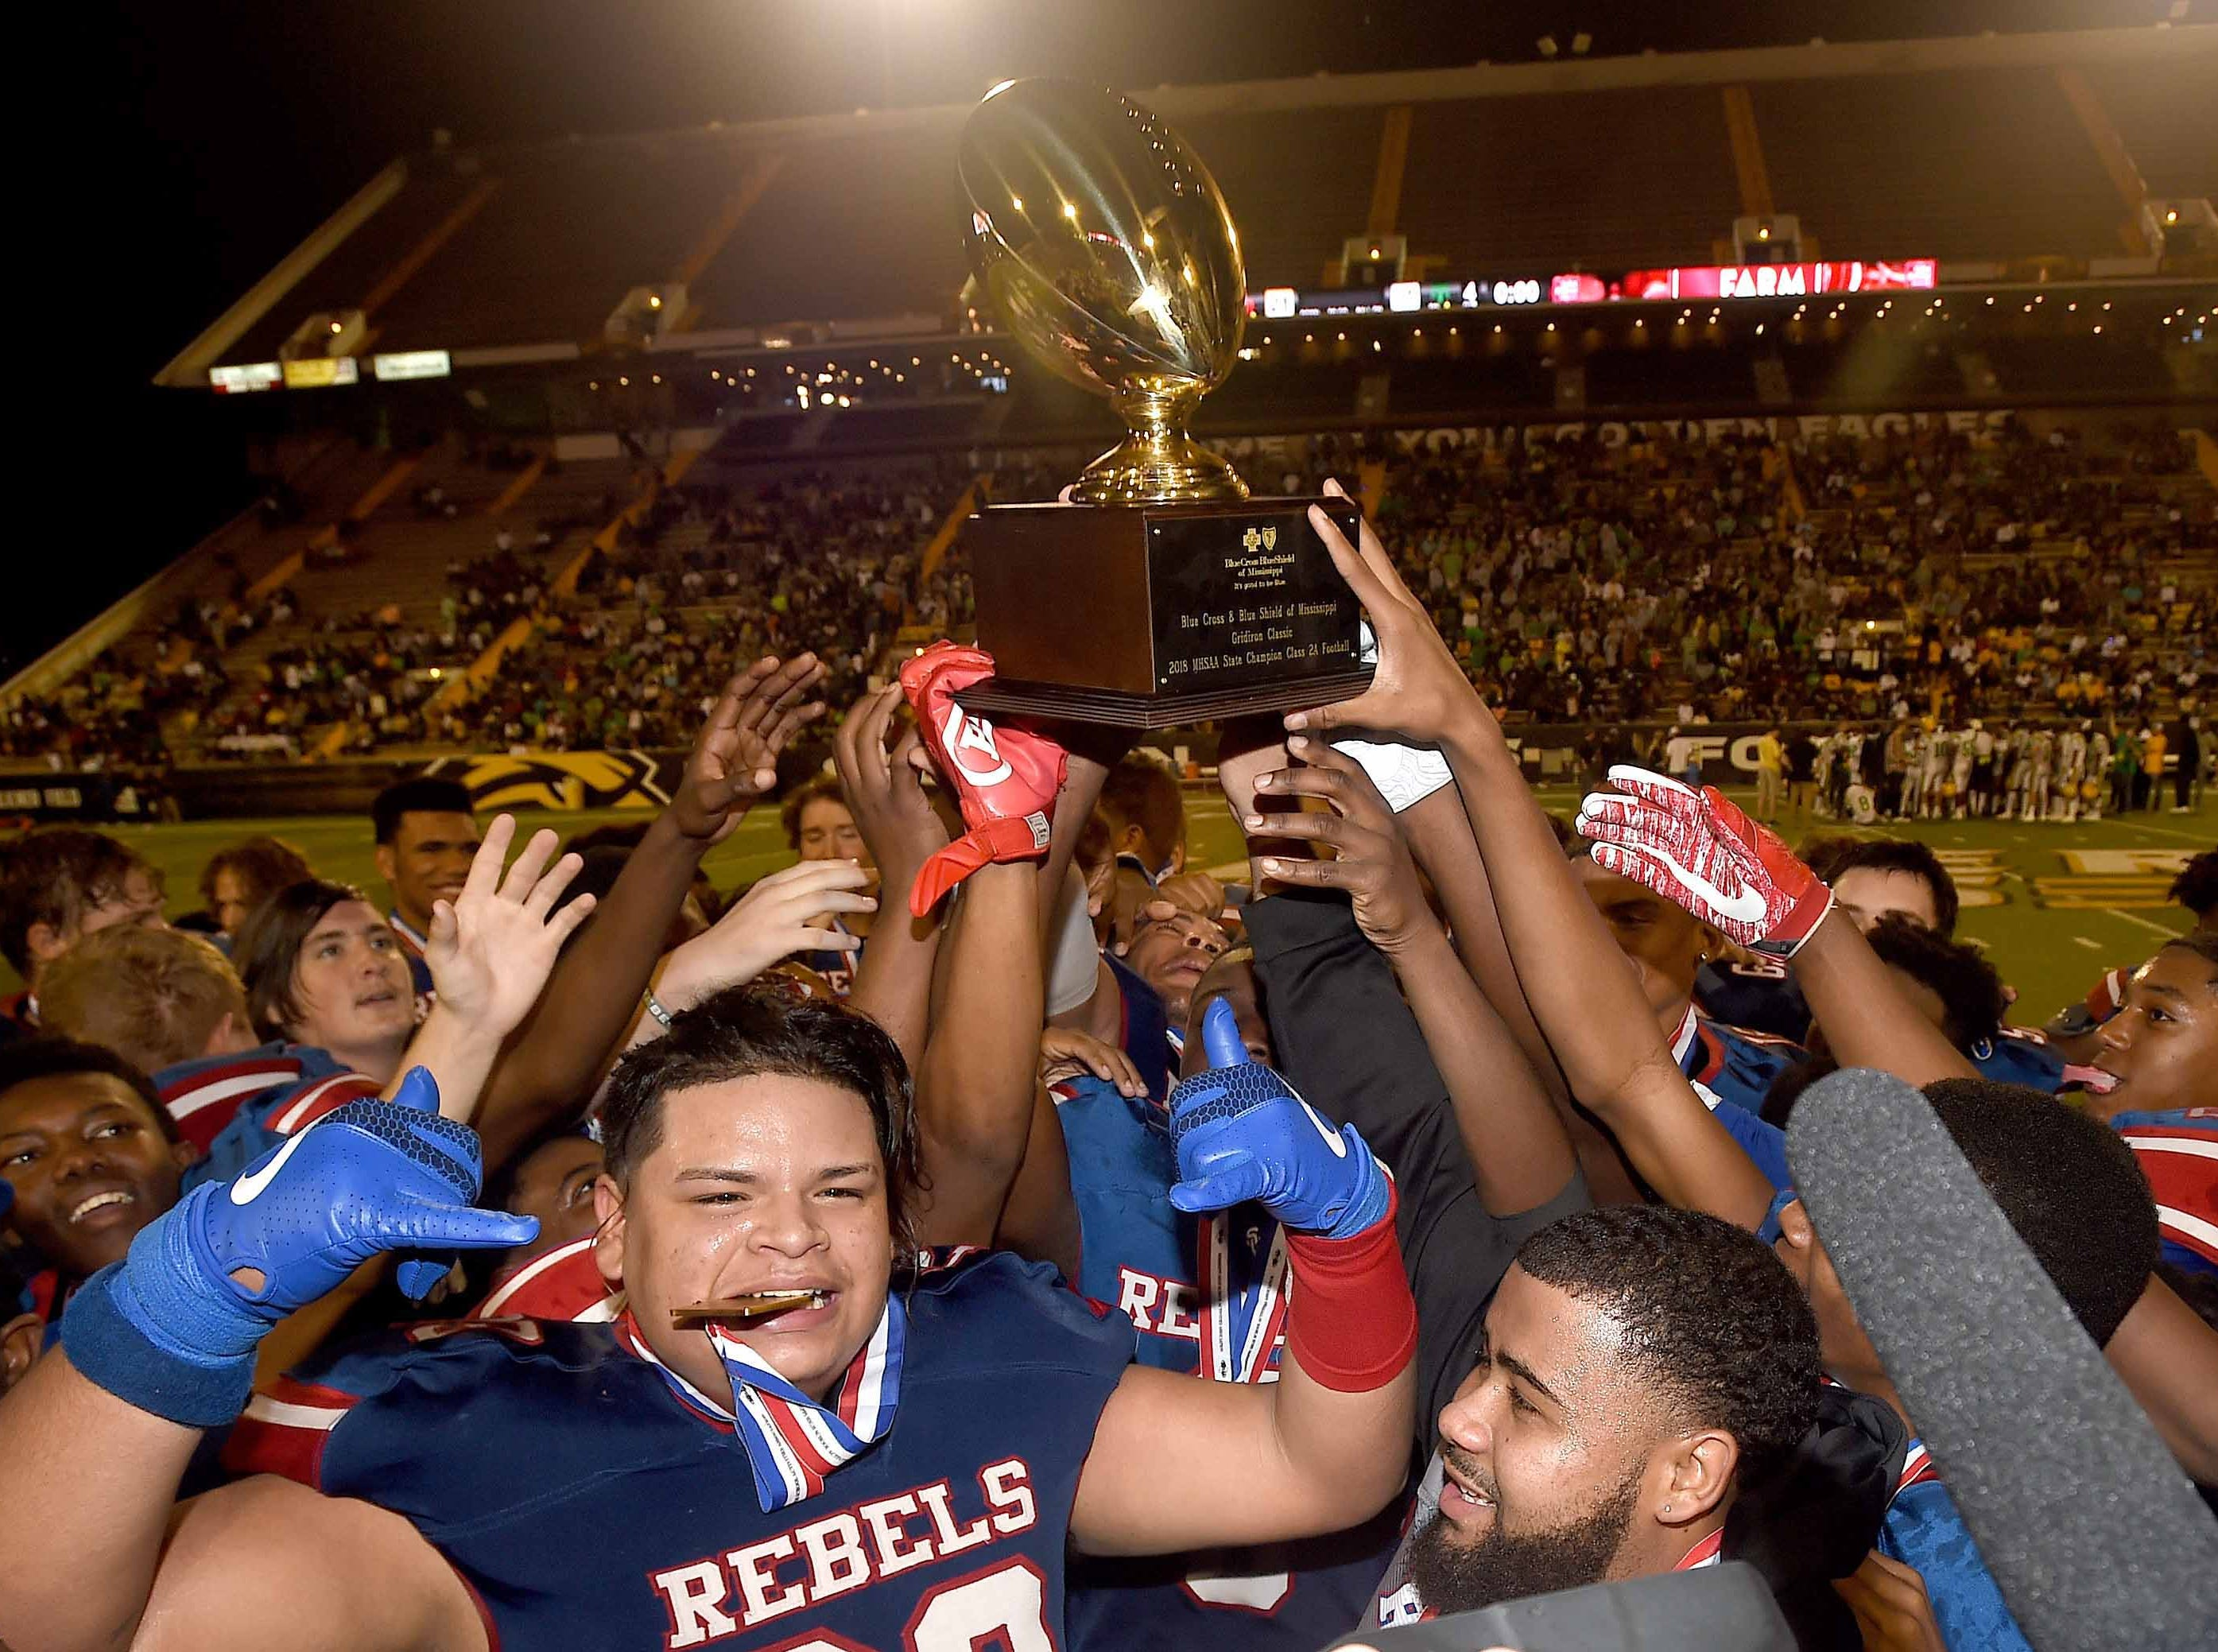 The Scott Central Rebels celebrate with the Class 2A trophy after beating Taylorsville on Saturday, December 1, 2018, in the MHSAA BlueCross BlueShield Gridiron Classic High School Football Championships in M.M. Roberts Stadium on the University of Southern Mississippi campus in Hattiesburg, Miss.